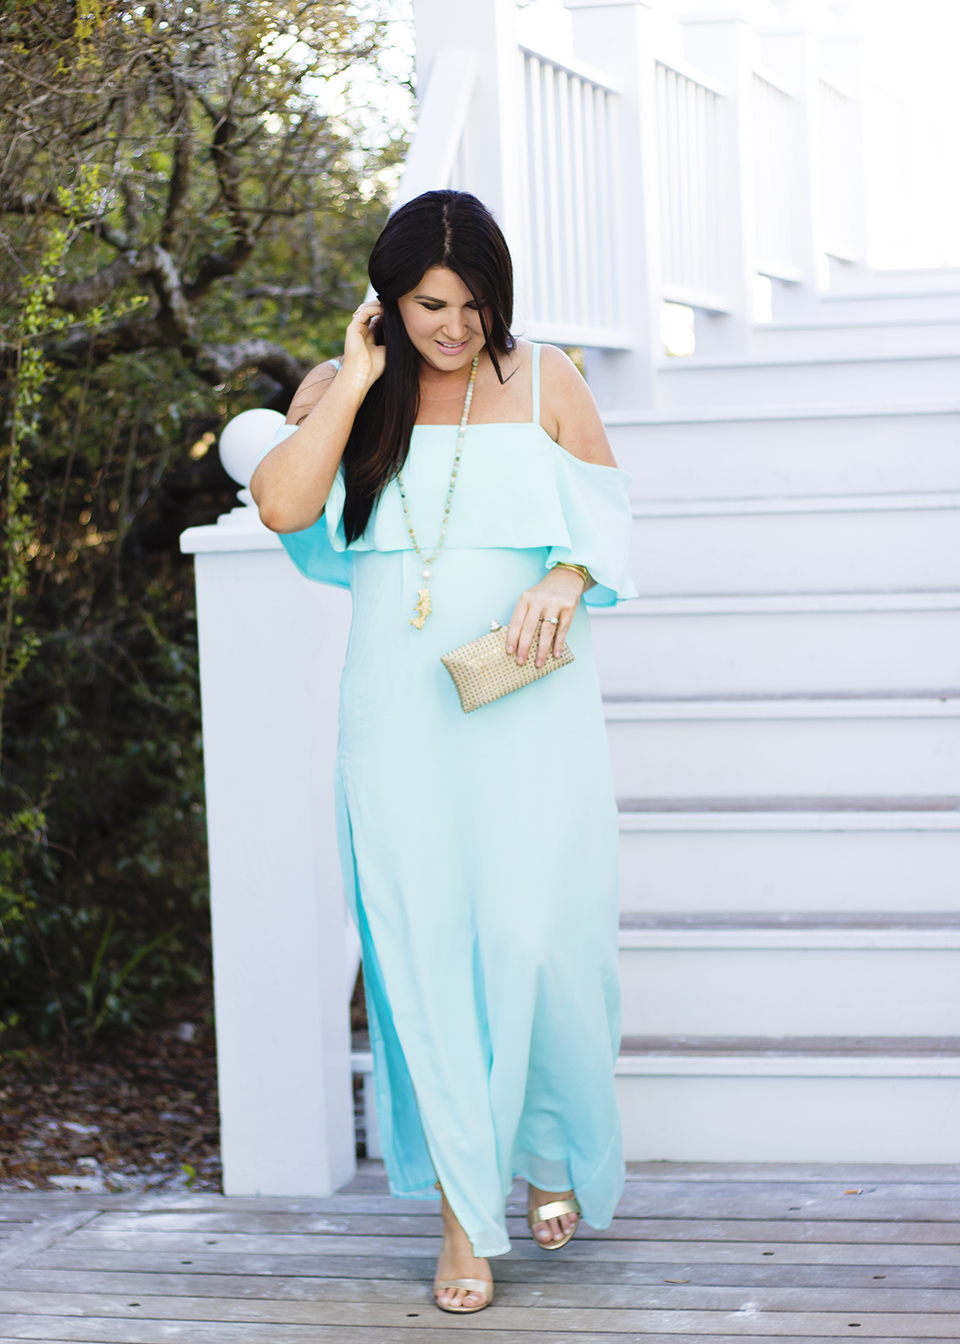 30A Street Style Jami Ray Blessings in Disguise Seaside 3